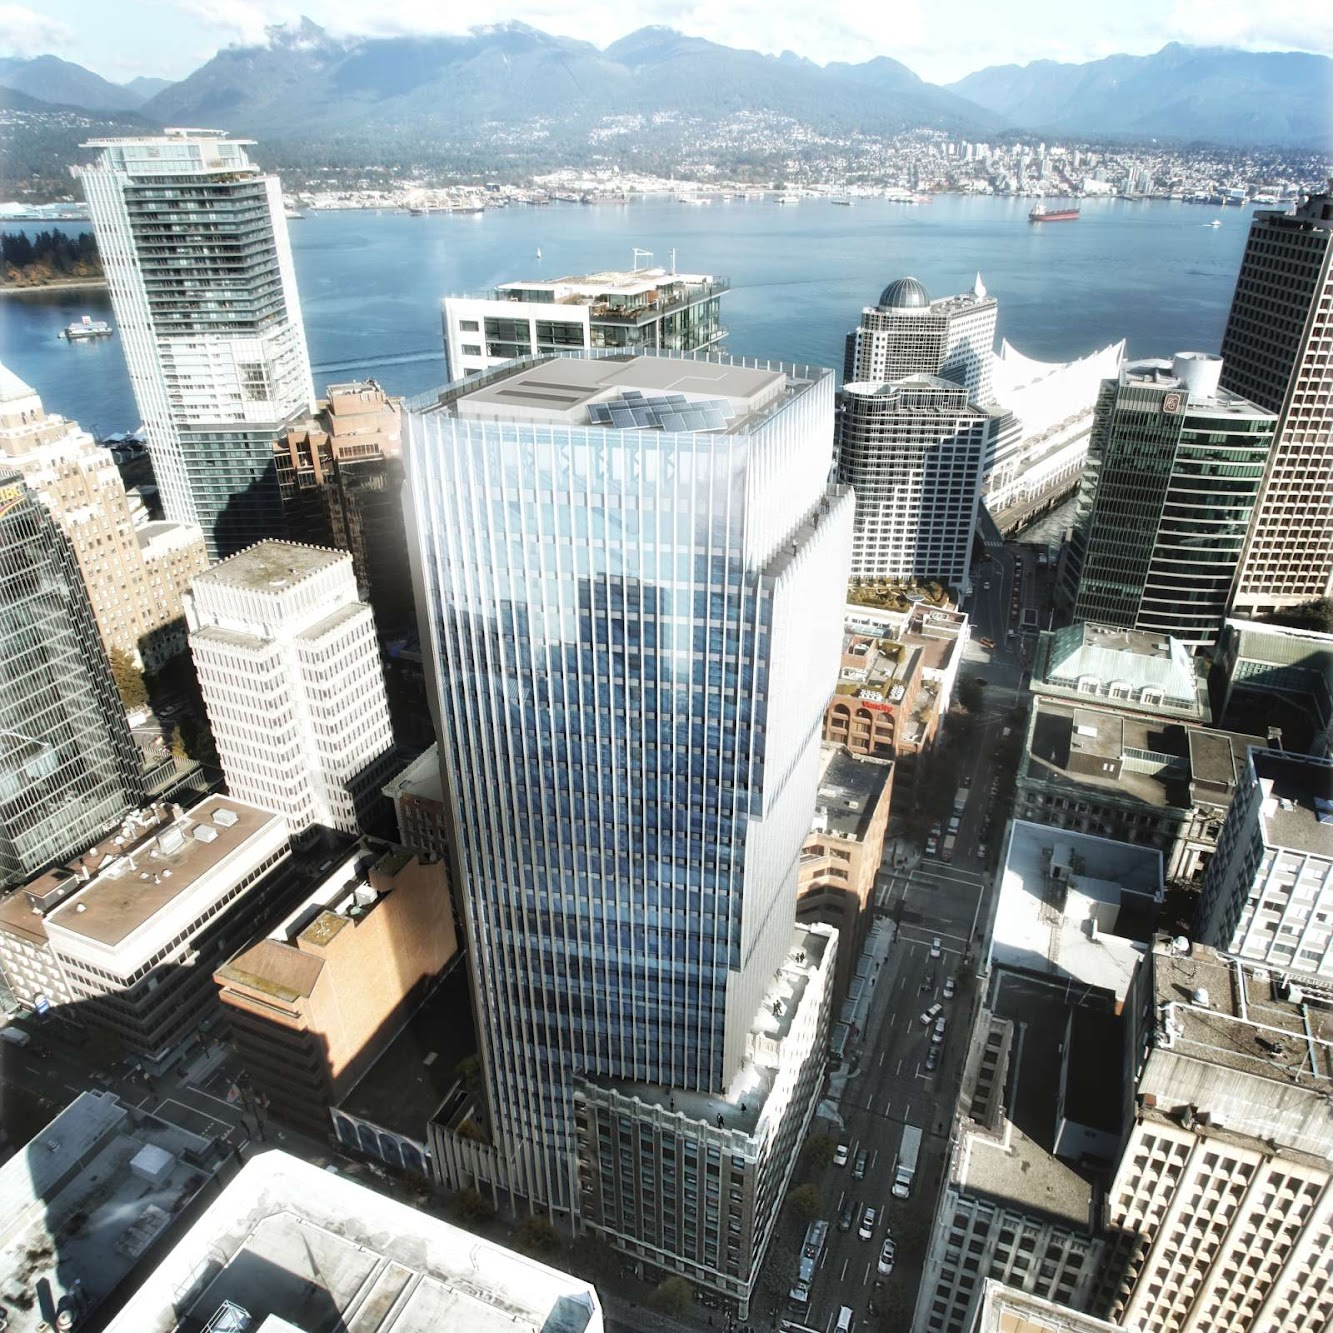 Vancouver, Columbia Britannica, Canada: The Exchange Tower by Harry Gugger Studio